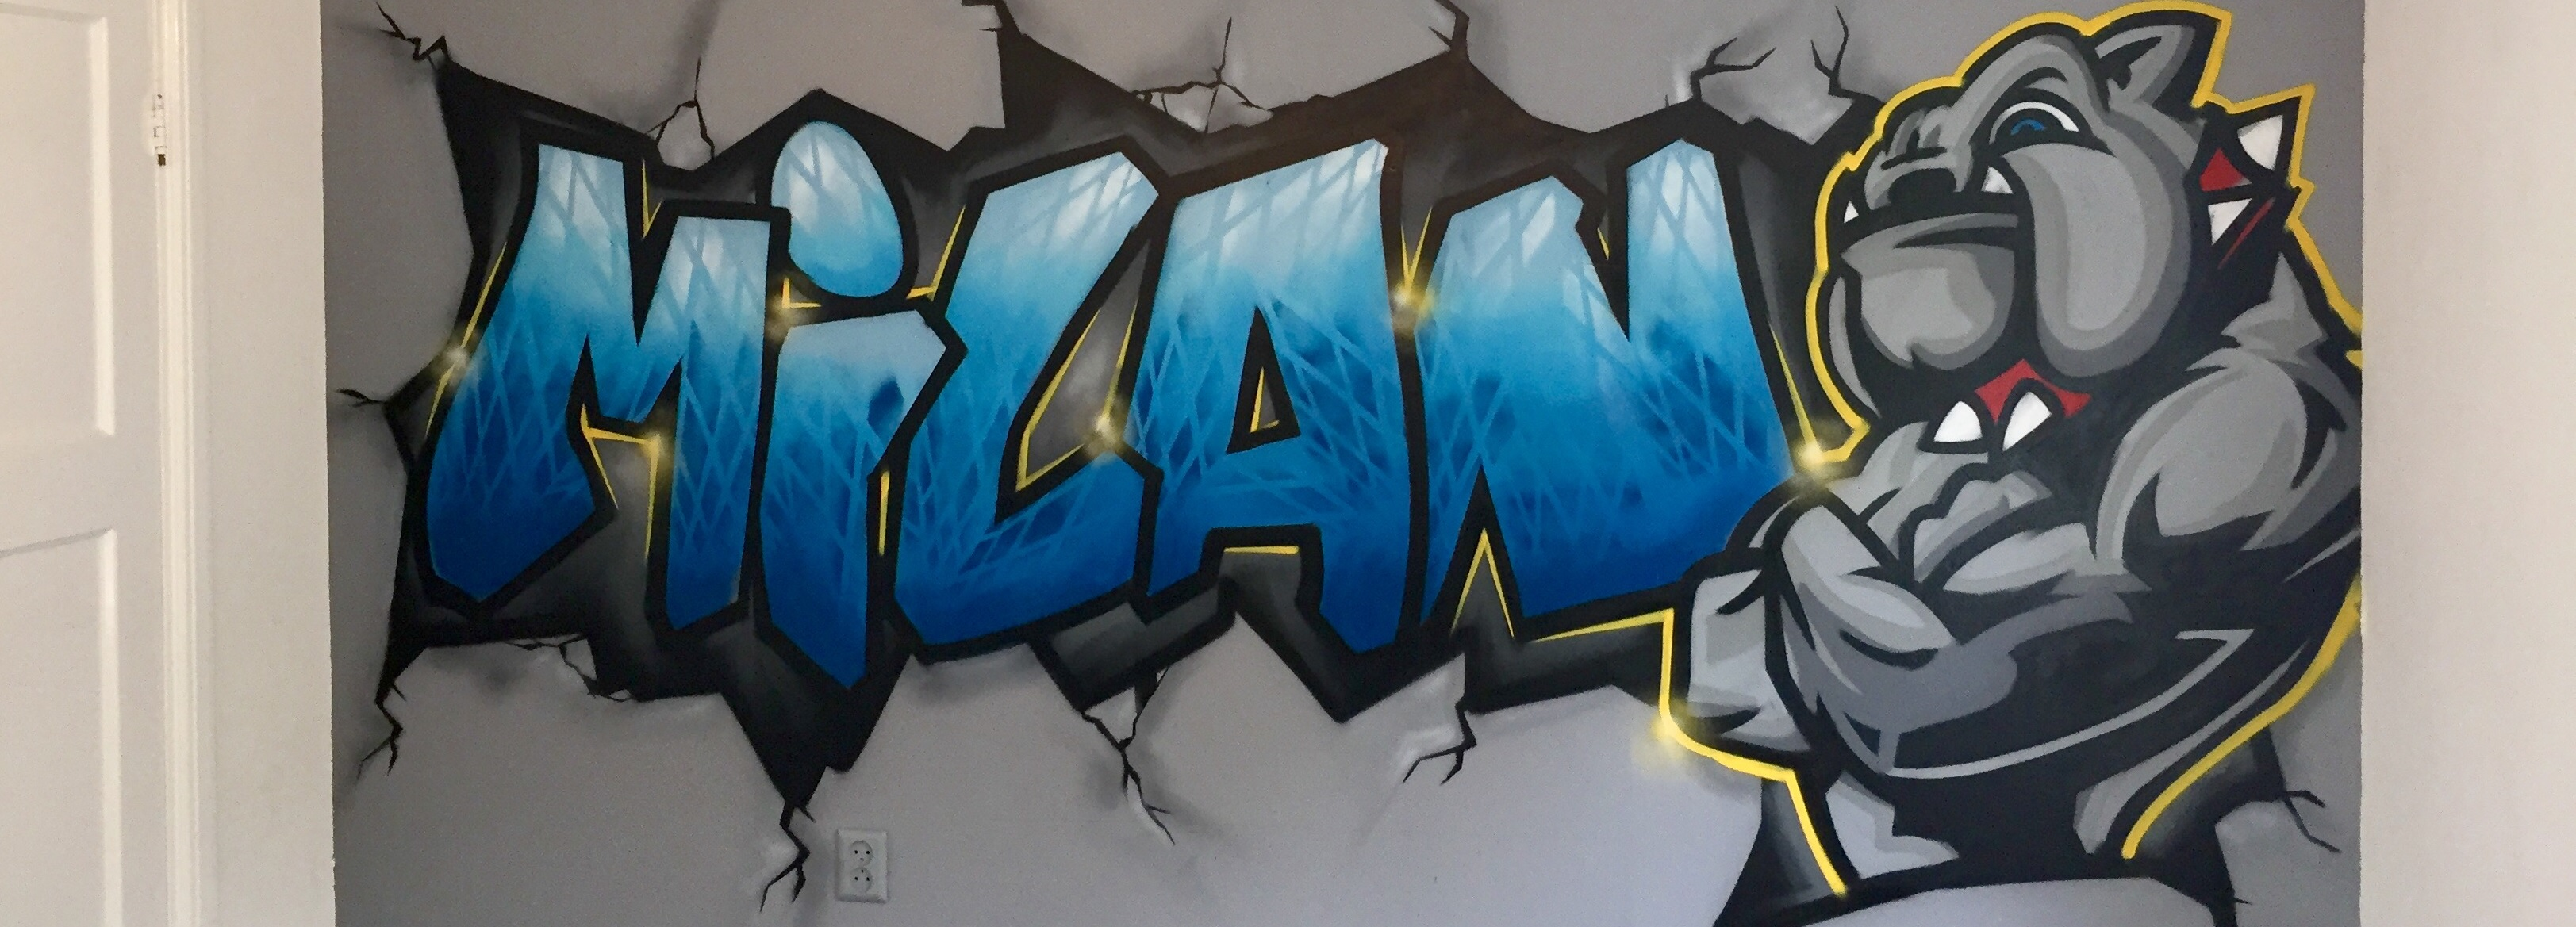 Graffiti-milan-header